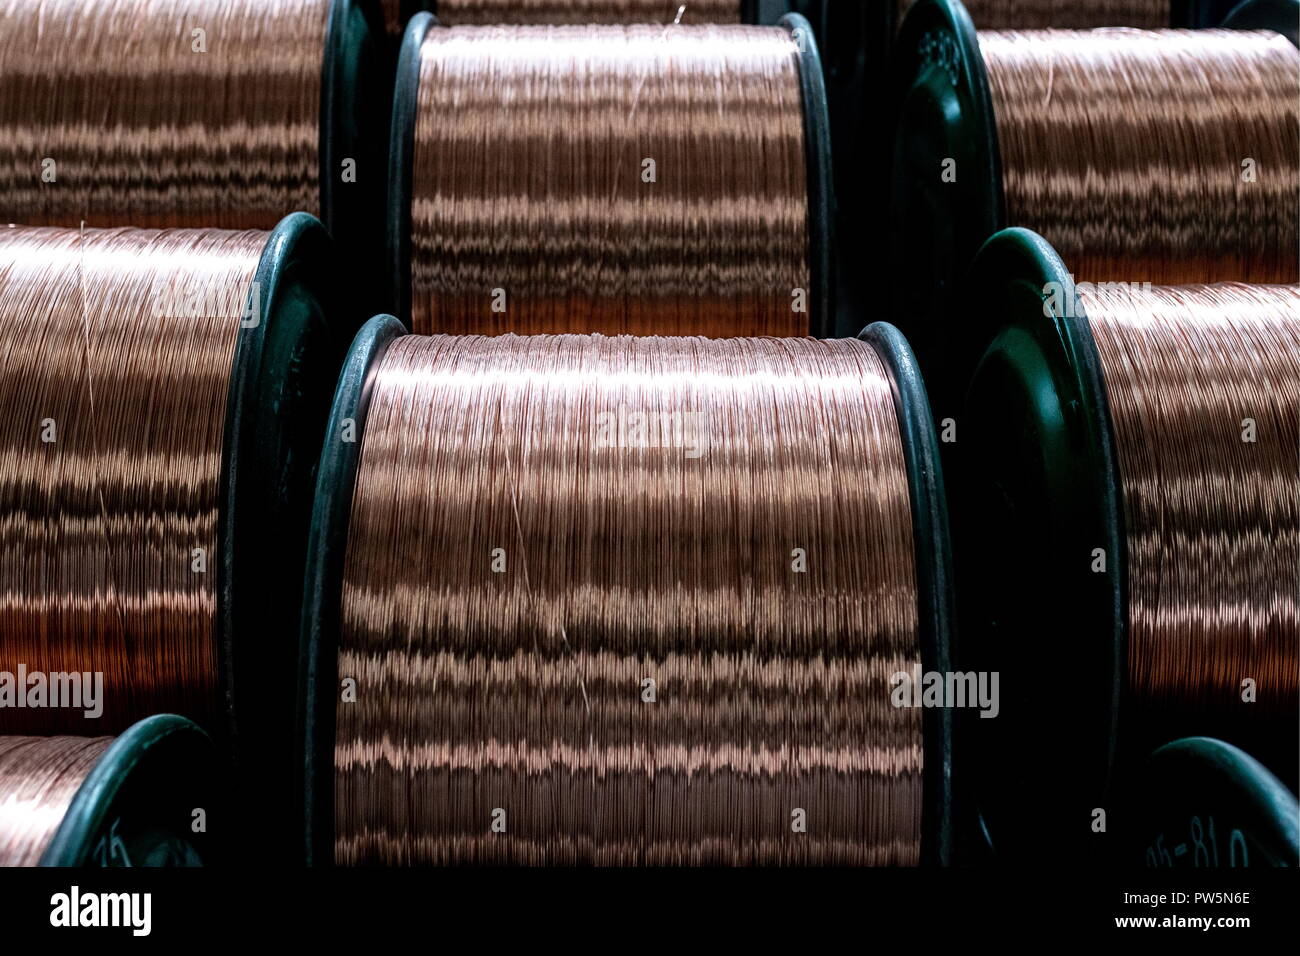 ERDENET, MONGOLIA - OCTOBER 11, 2018: Copper wire at an ore processing complex operated by Erdenet Mining Corporation (EMC), a major manufacturer of copper concentrate and molybdenum concentrate. Sergei Bobylev/TASS - Stock Image